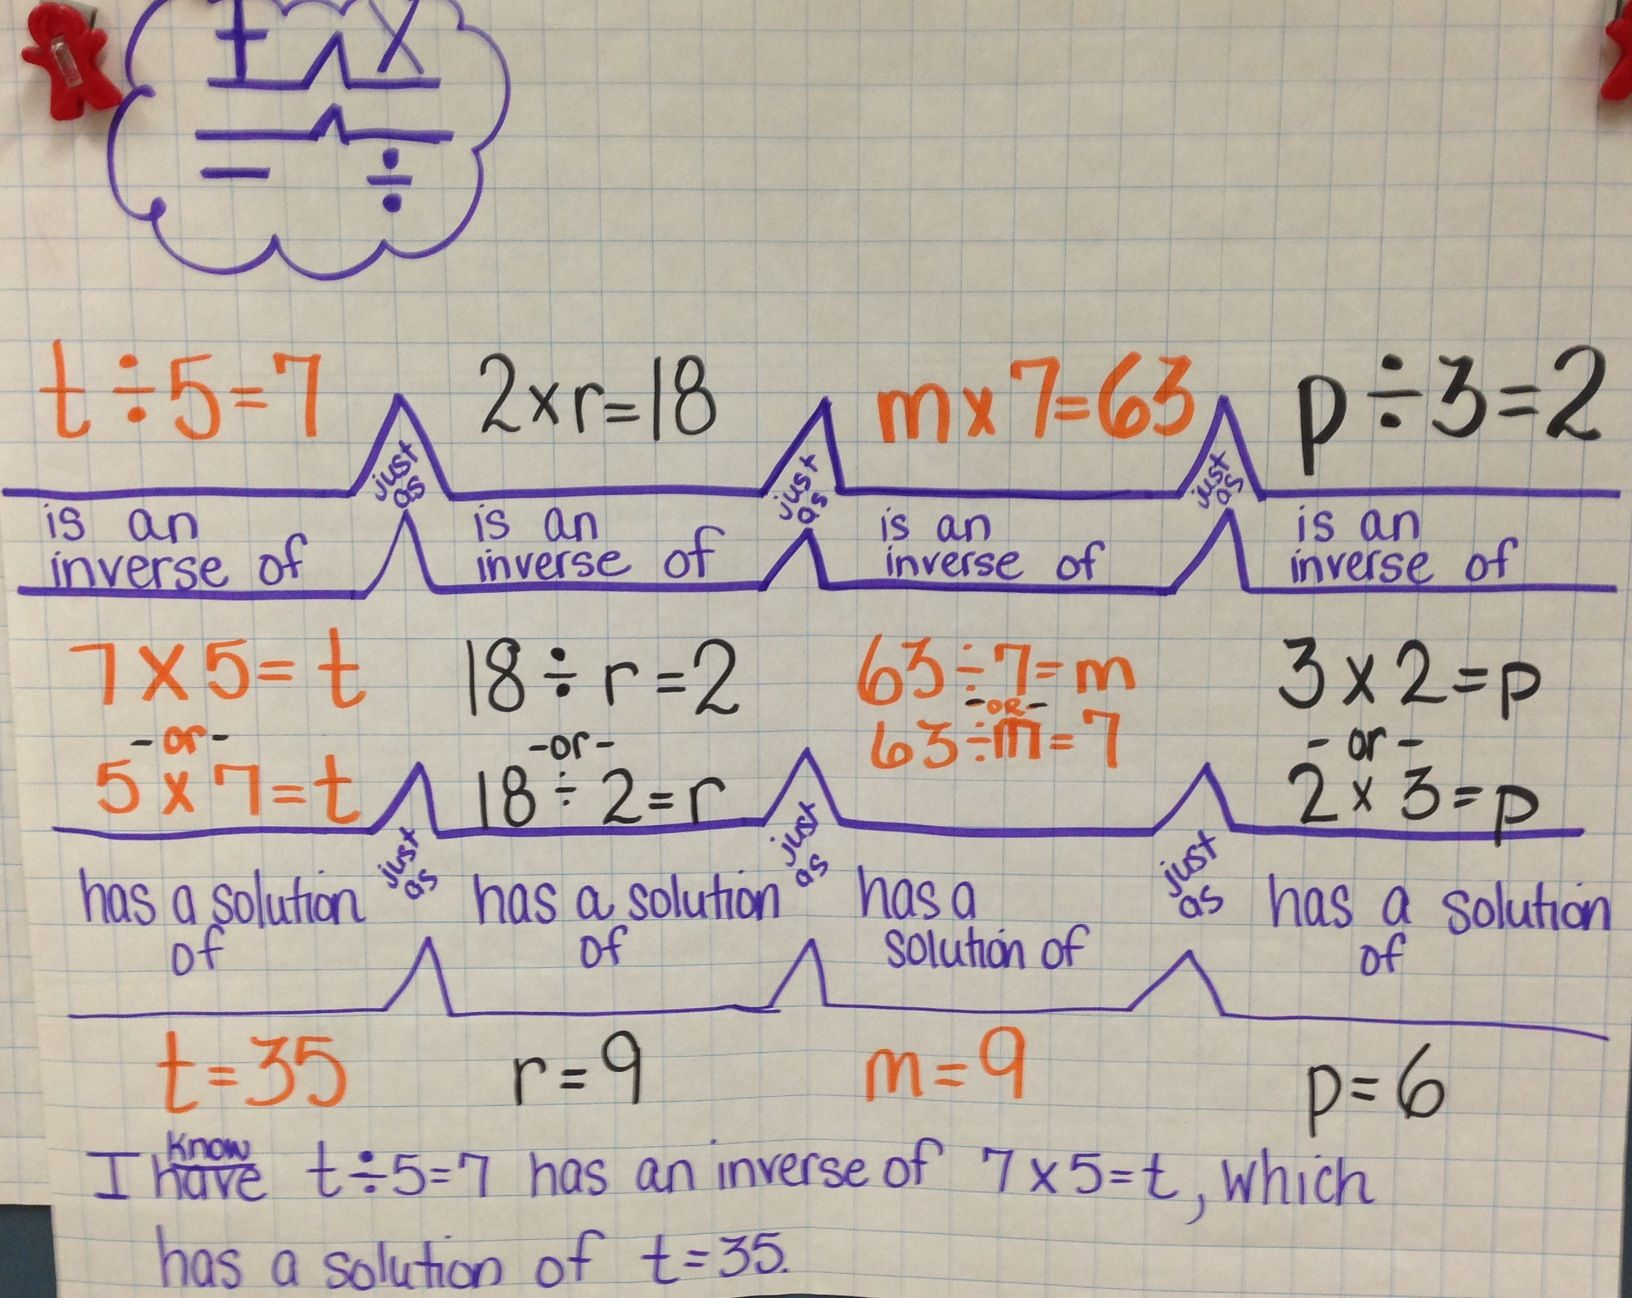 Bridge Map With Algebraic Problems Focus On Inverse